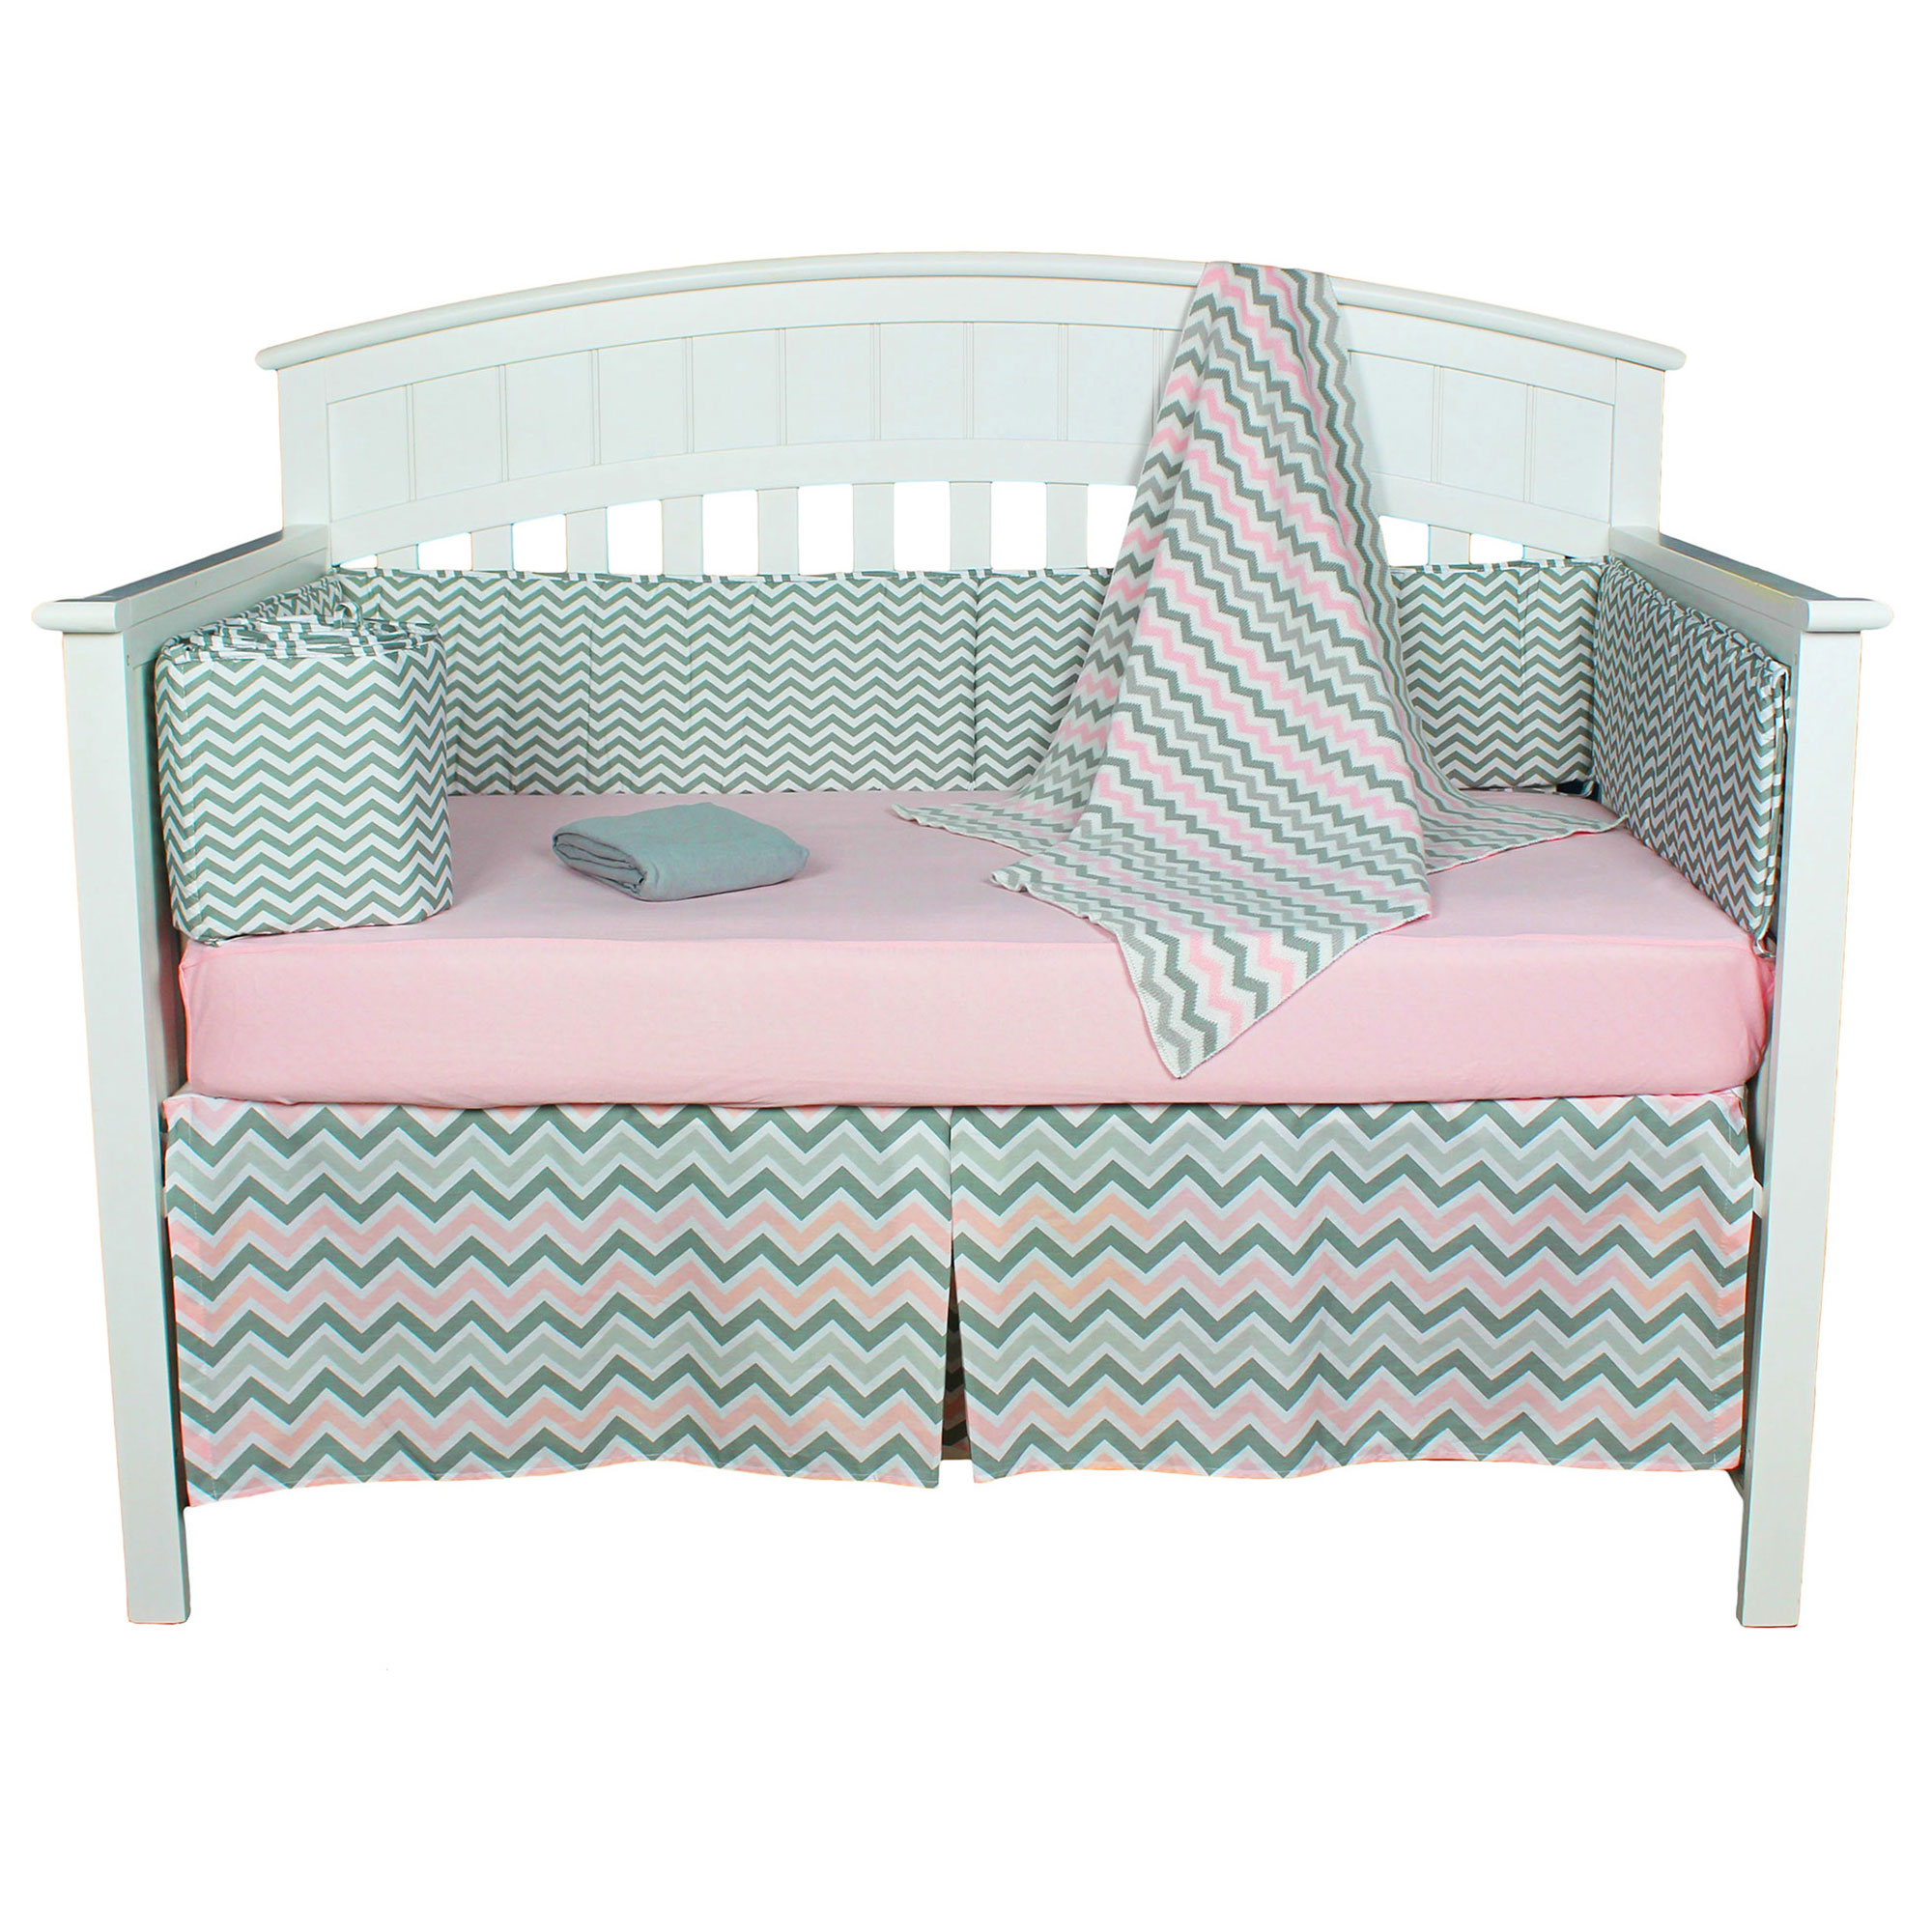 American Baby Company Crib Bedding Set - Pink and Grey Zig Zag - Chevron 5 Piece Baby Bedding Set with Bumper